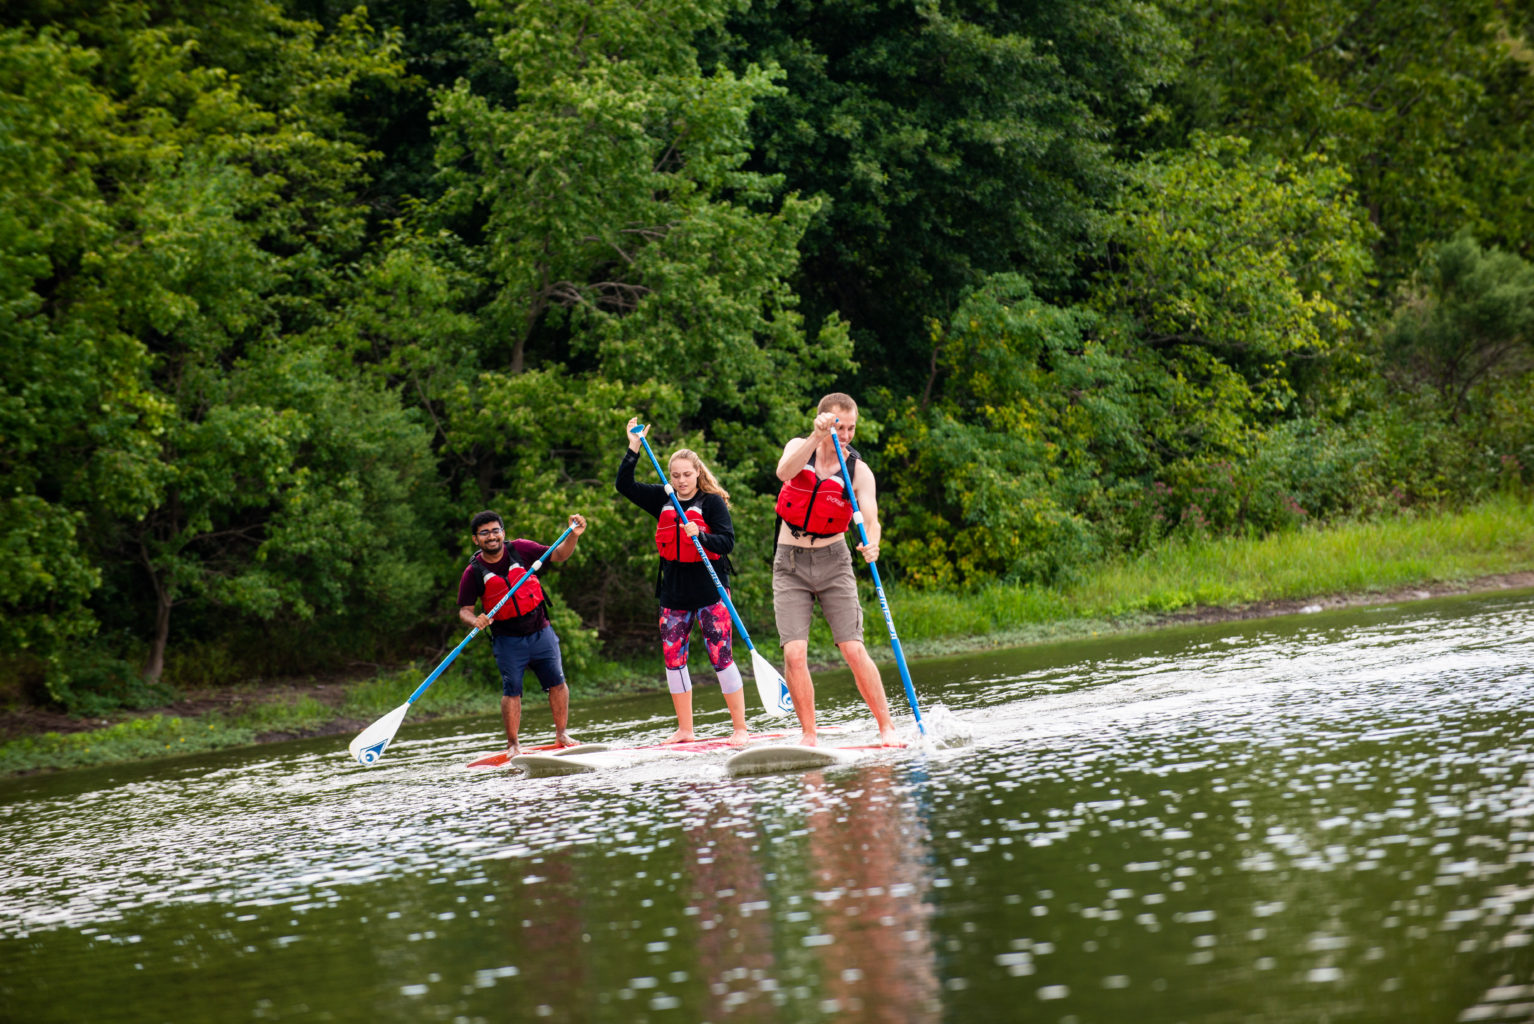 Students paddle boarding